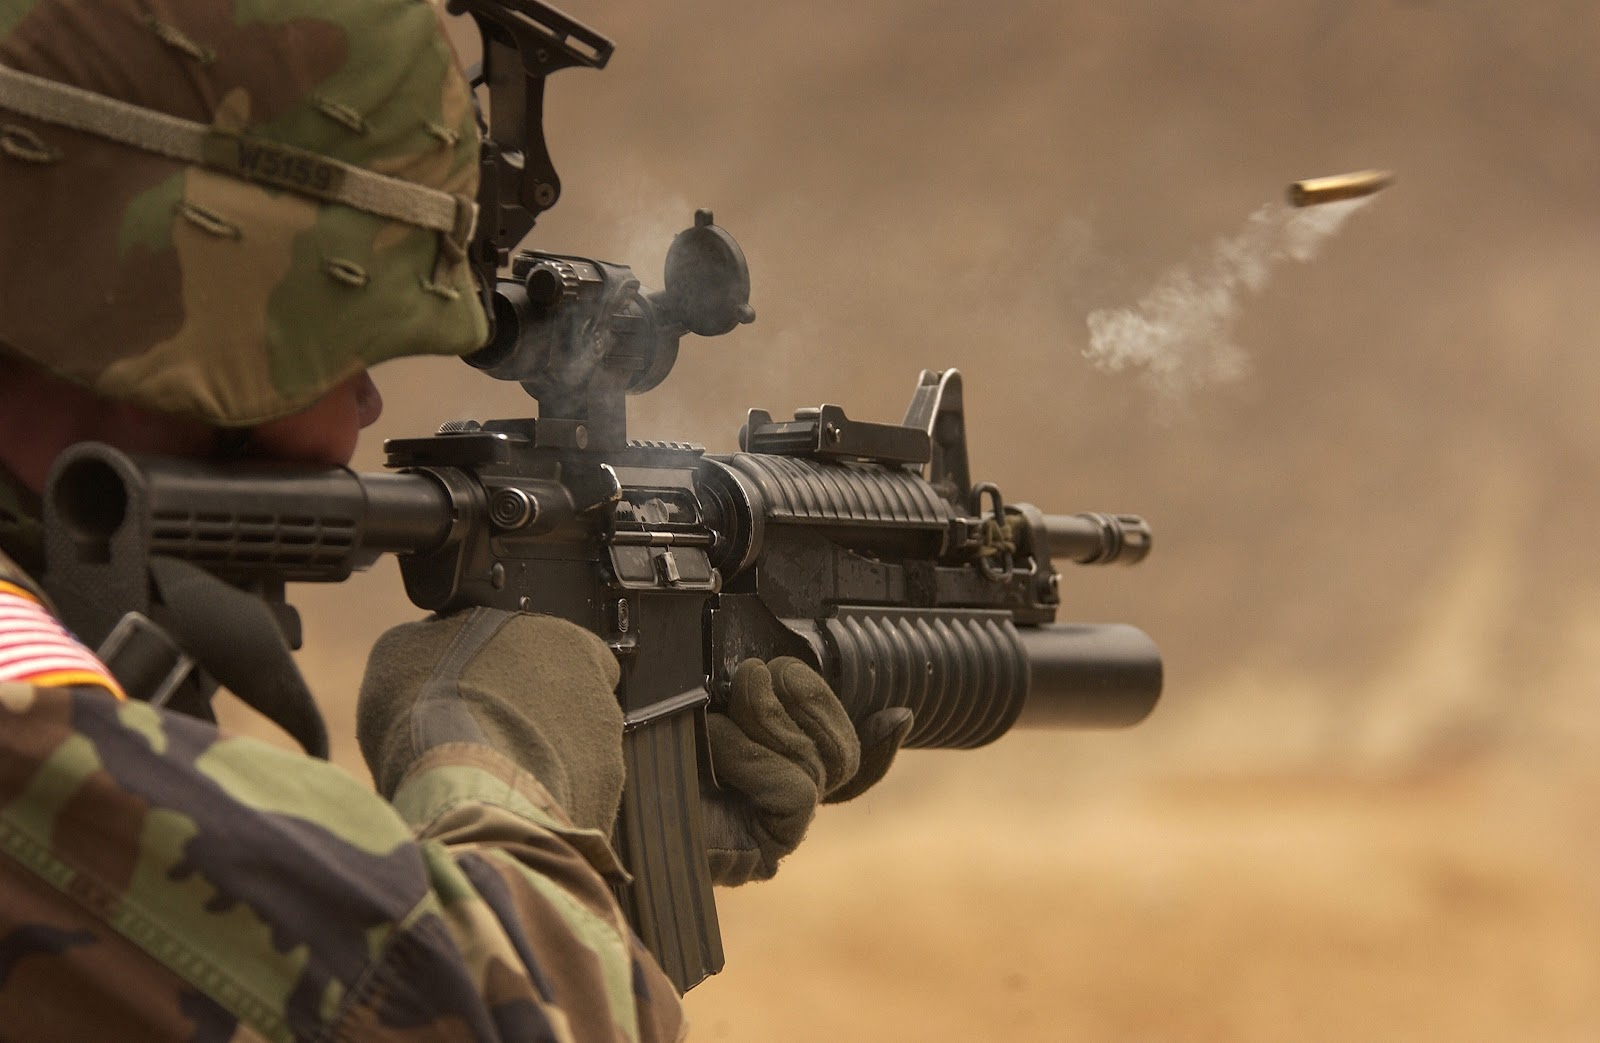 War photography is the most risc seeking type of photography